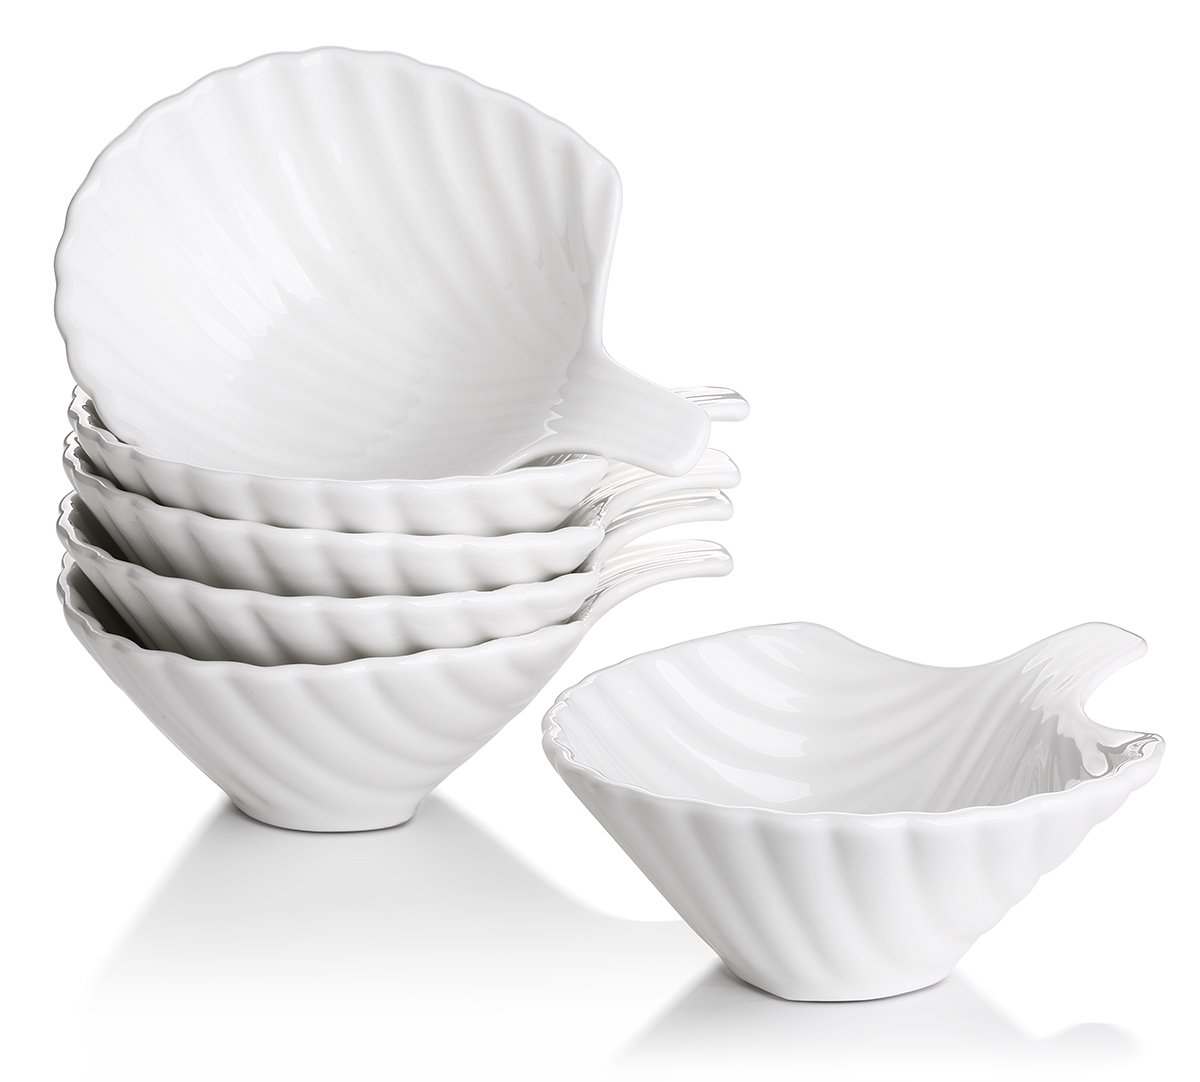 Lifver 6-Pack Bowl Sets/Ramekins, Lovely Shell-shape Porcelain Dip Bowls, White